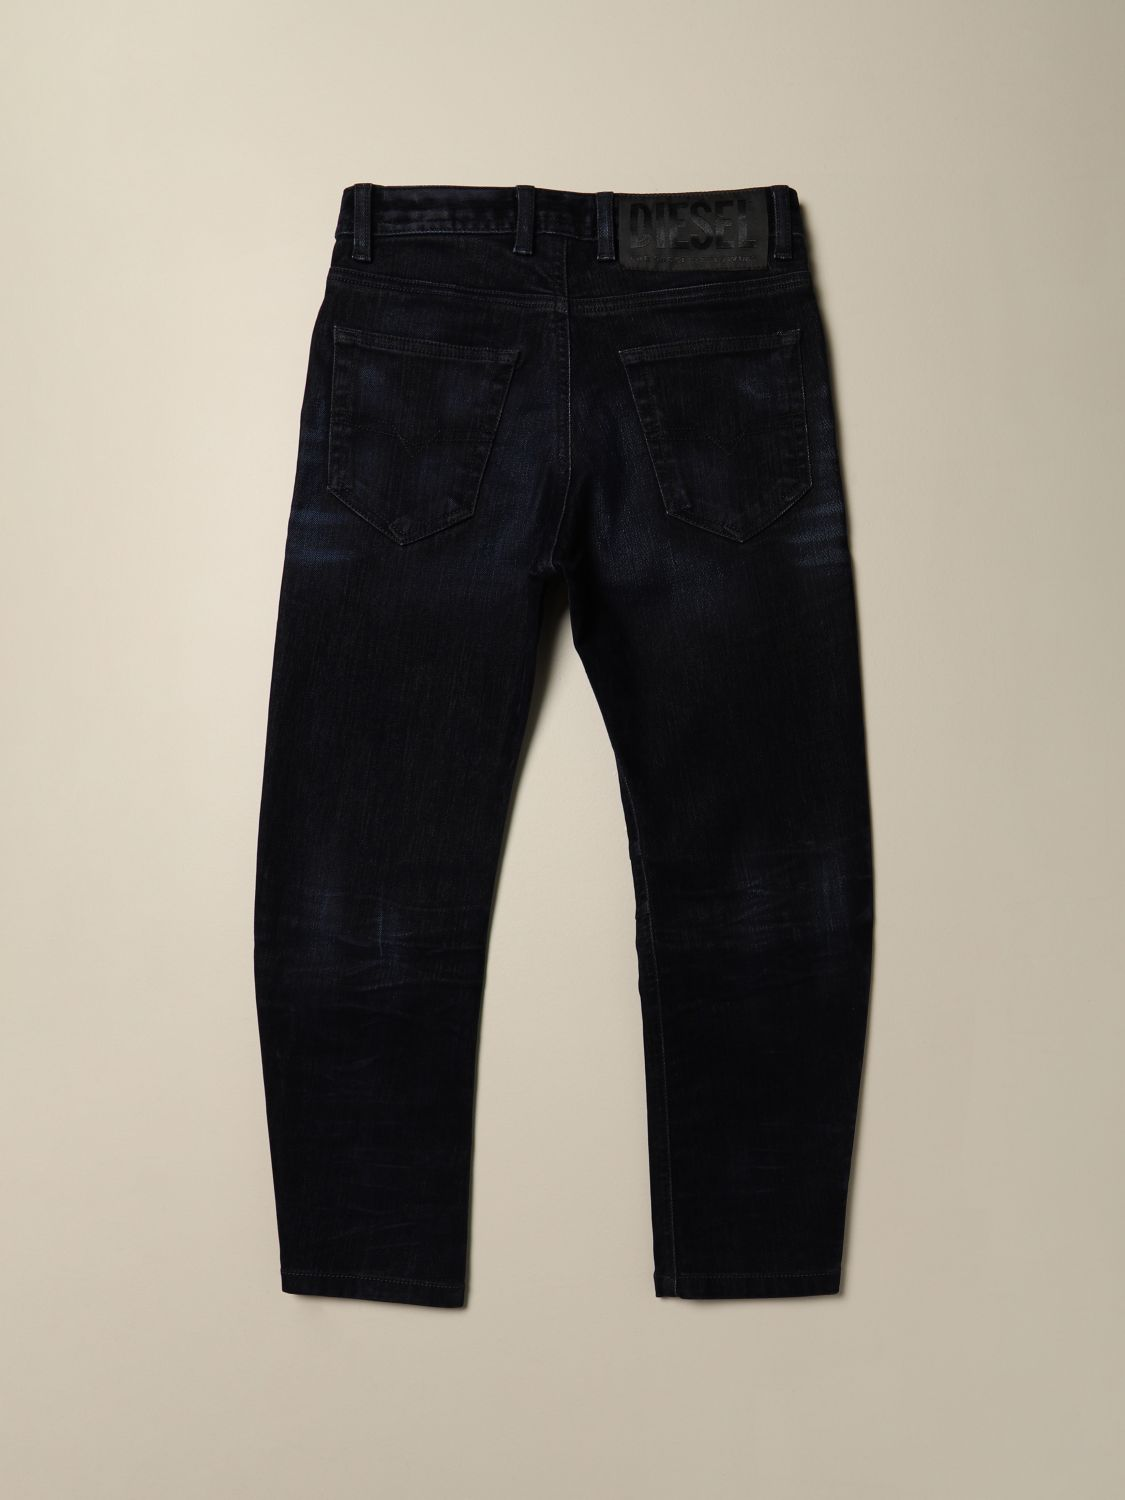 Jeans Diesel: Jeans Diesel carrot fit in denim blue 2